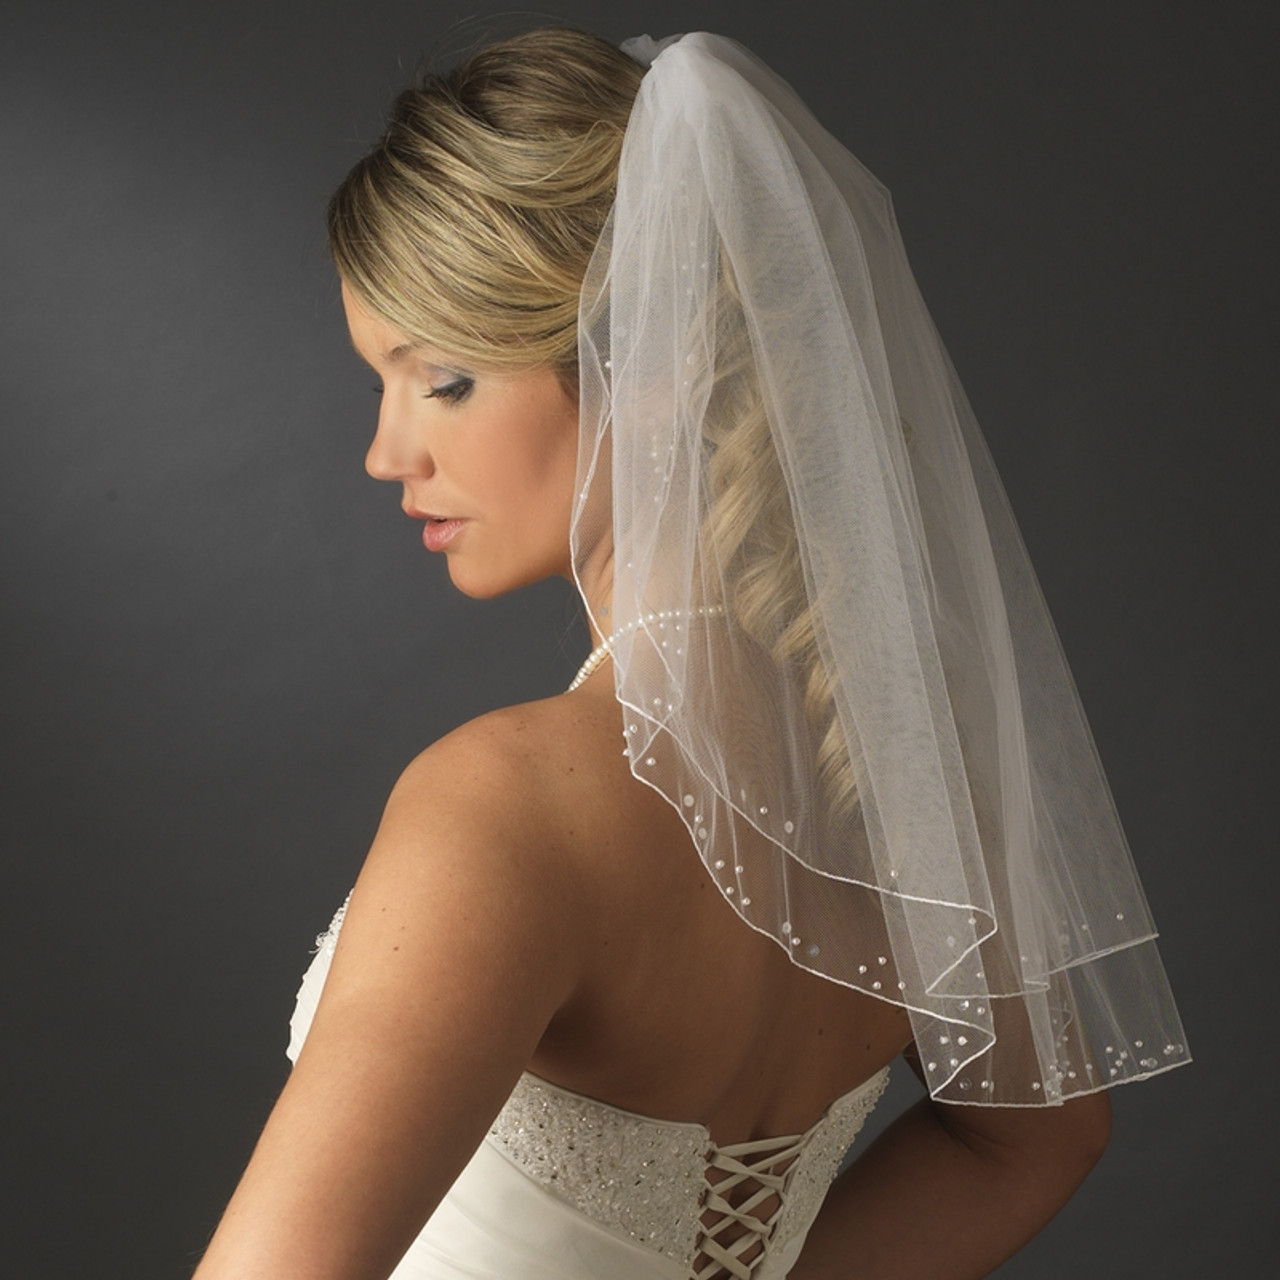 Double Layer Flowergirl Veil Style 010 w/ Scattered Pearls & Sequence